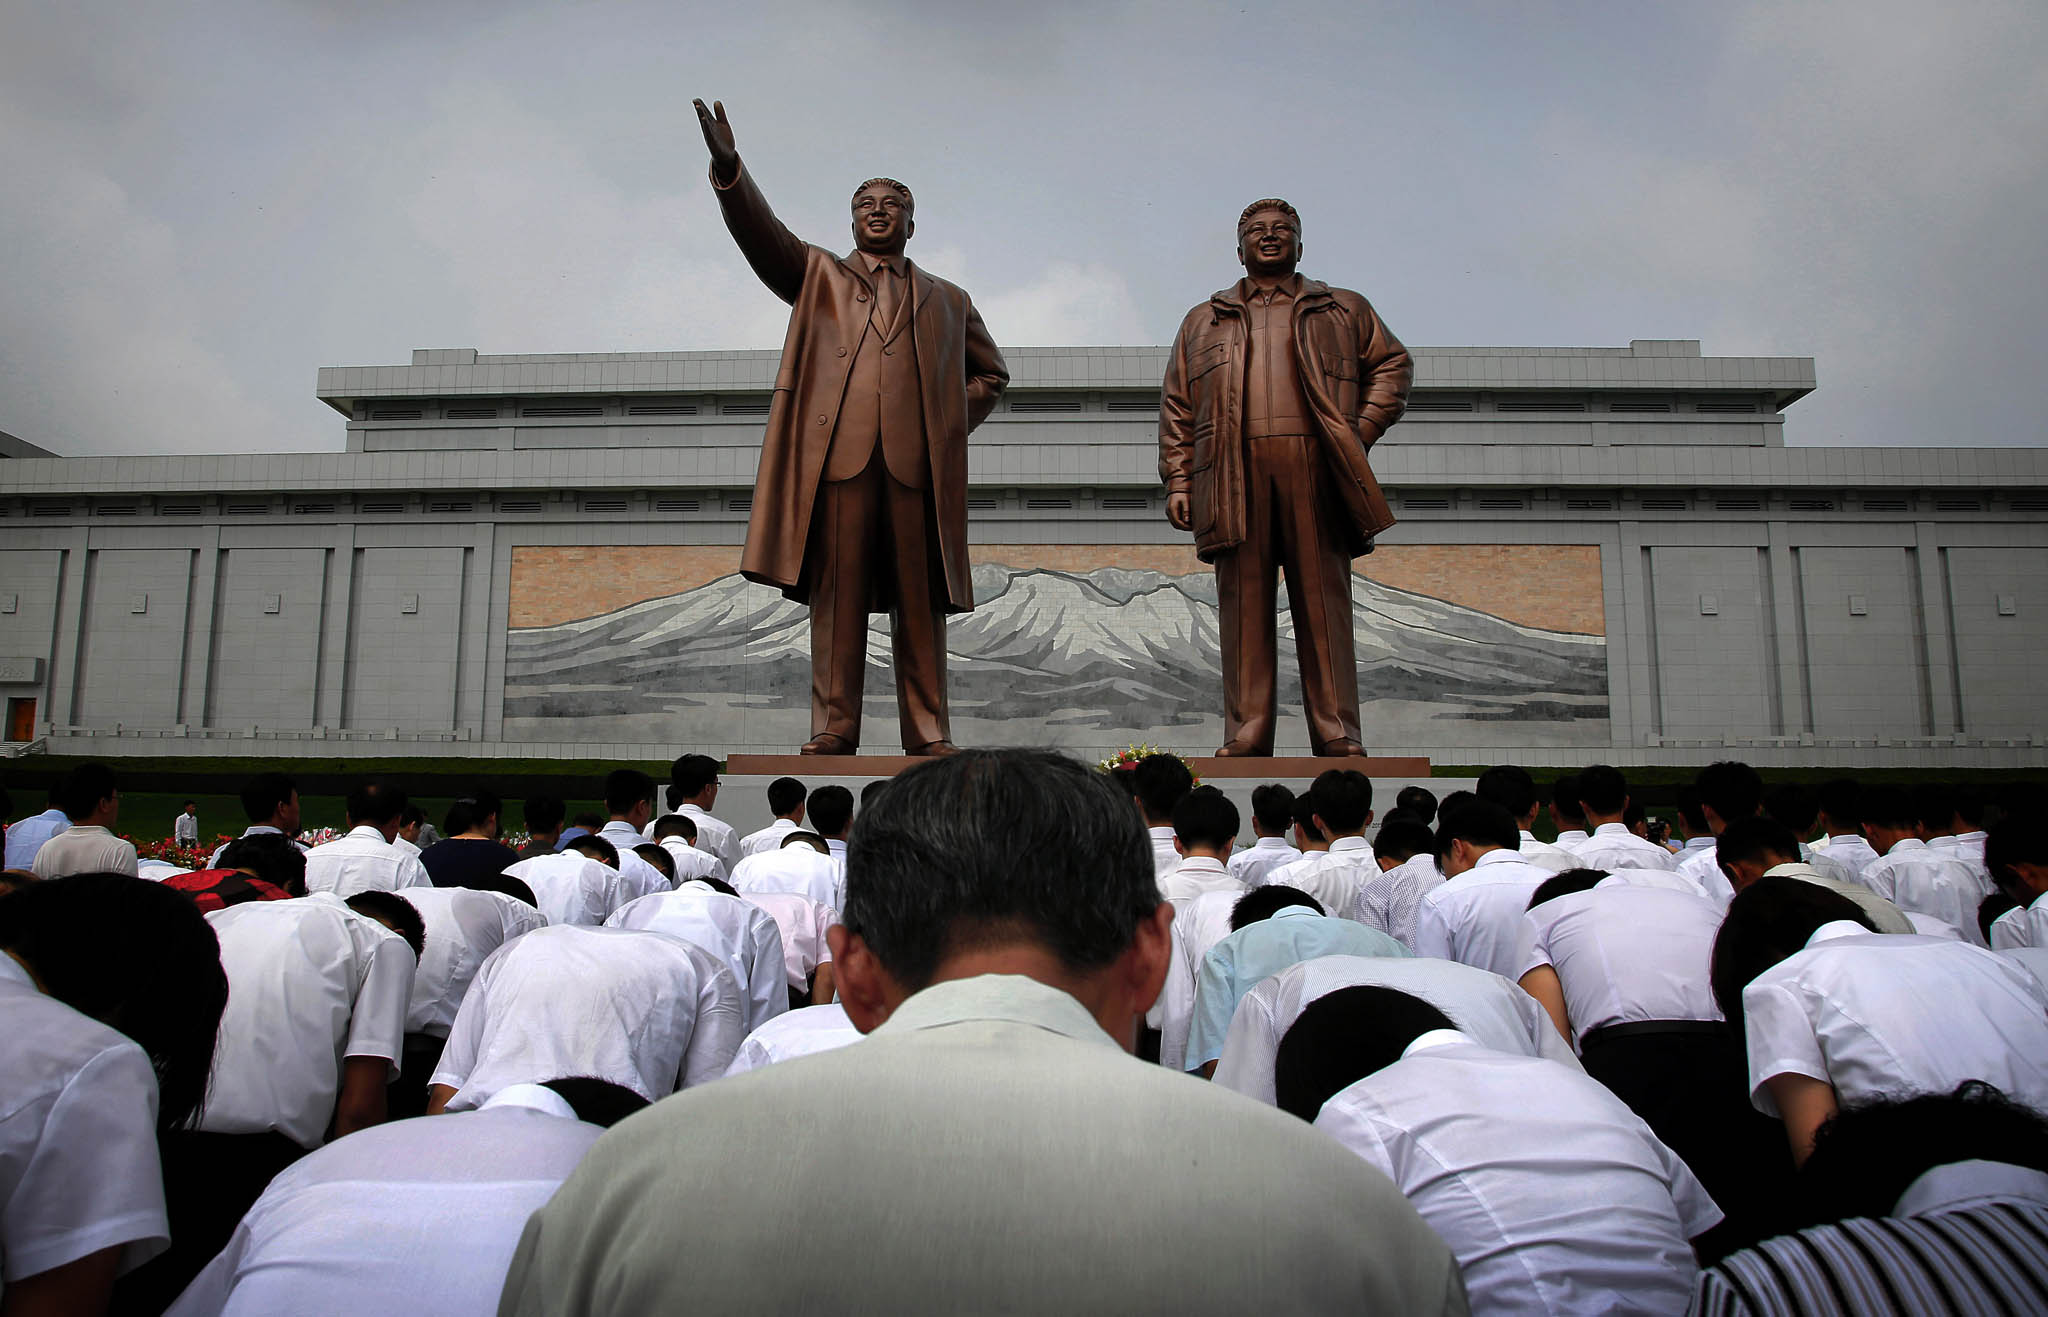 North Koreans bow in front of bronze statues of the late leaders Kim Il Sung and Kim Jong Il at Munsu Hill, Pyongyang, North Korea. North Koreans gathered to offer flowers and pay their respects to their late leaders as part of celebrations for the 62nd anniversary of the armistice that ended the Korean War.